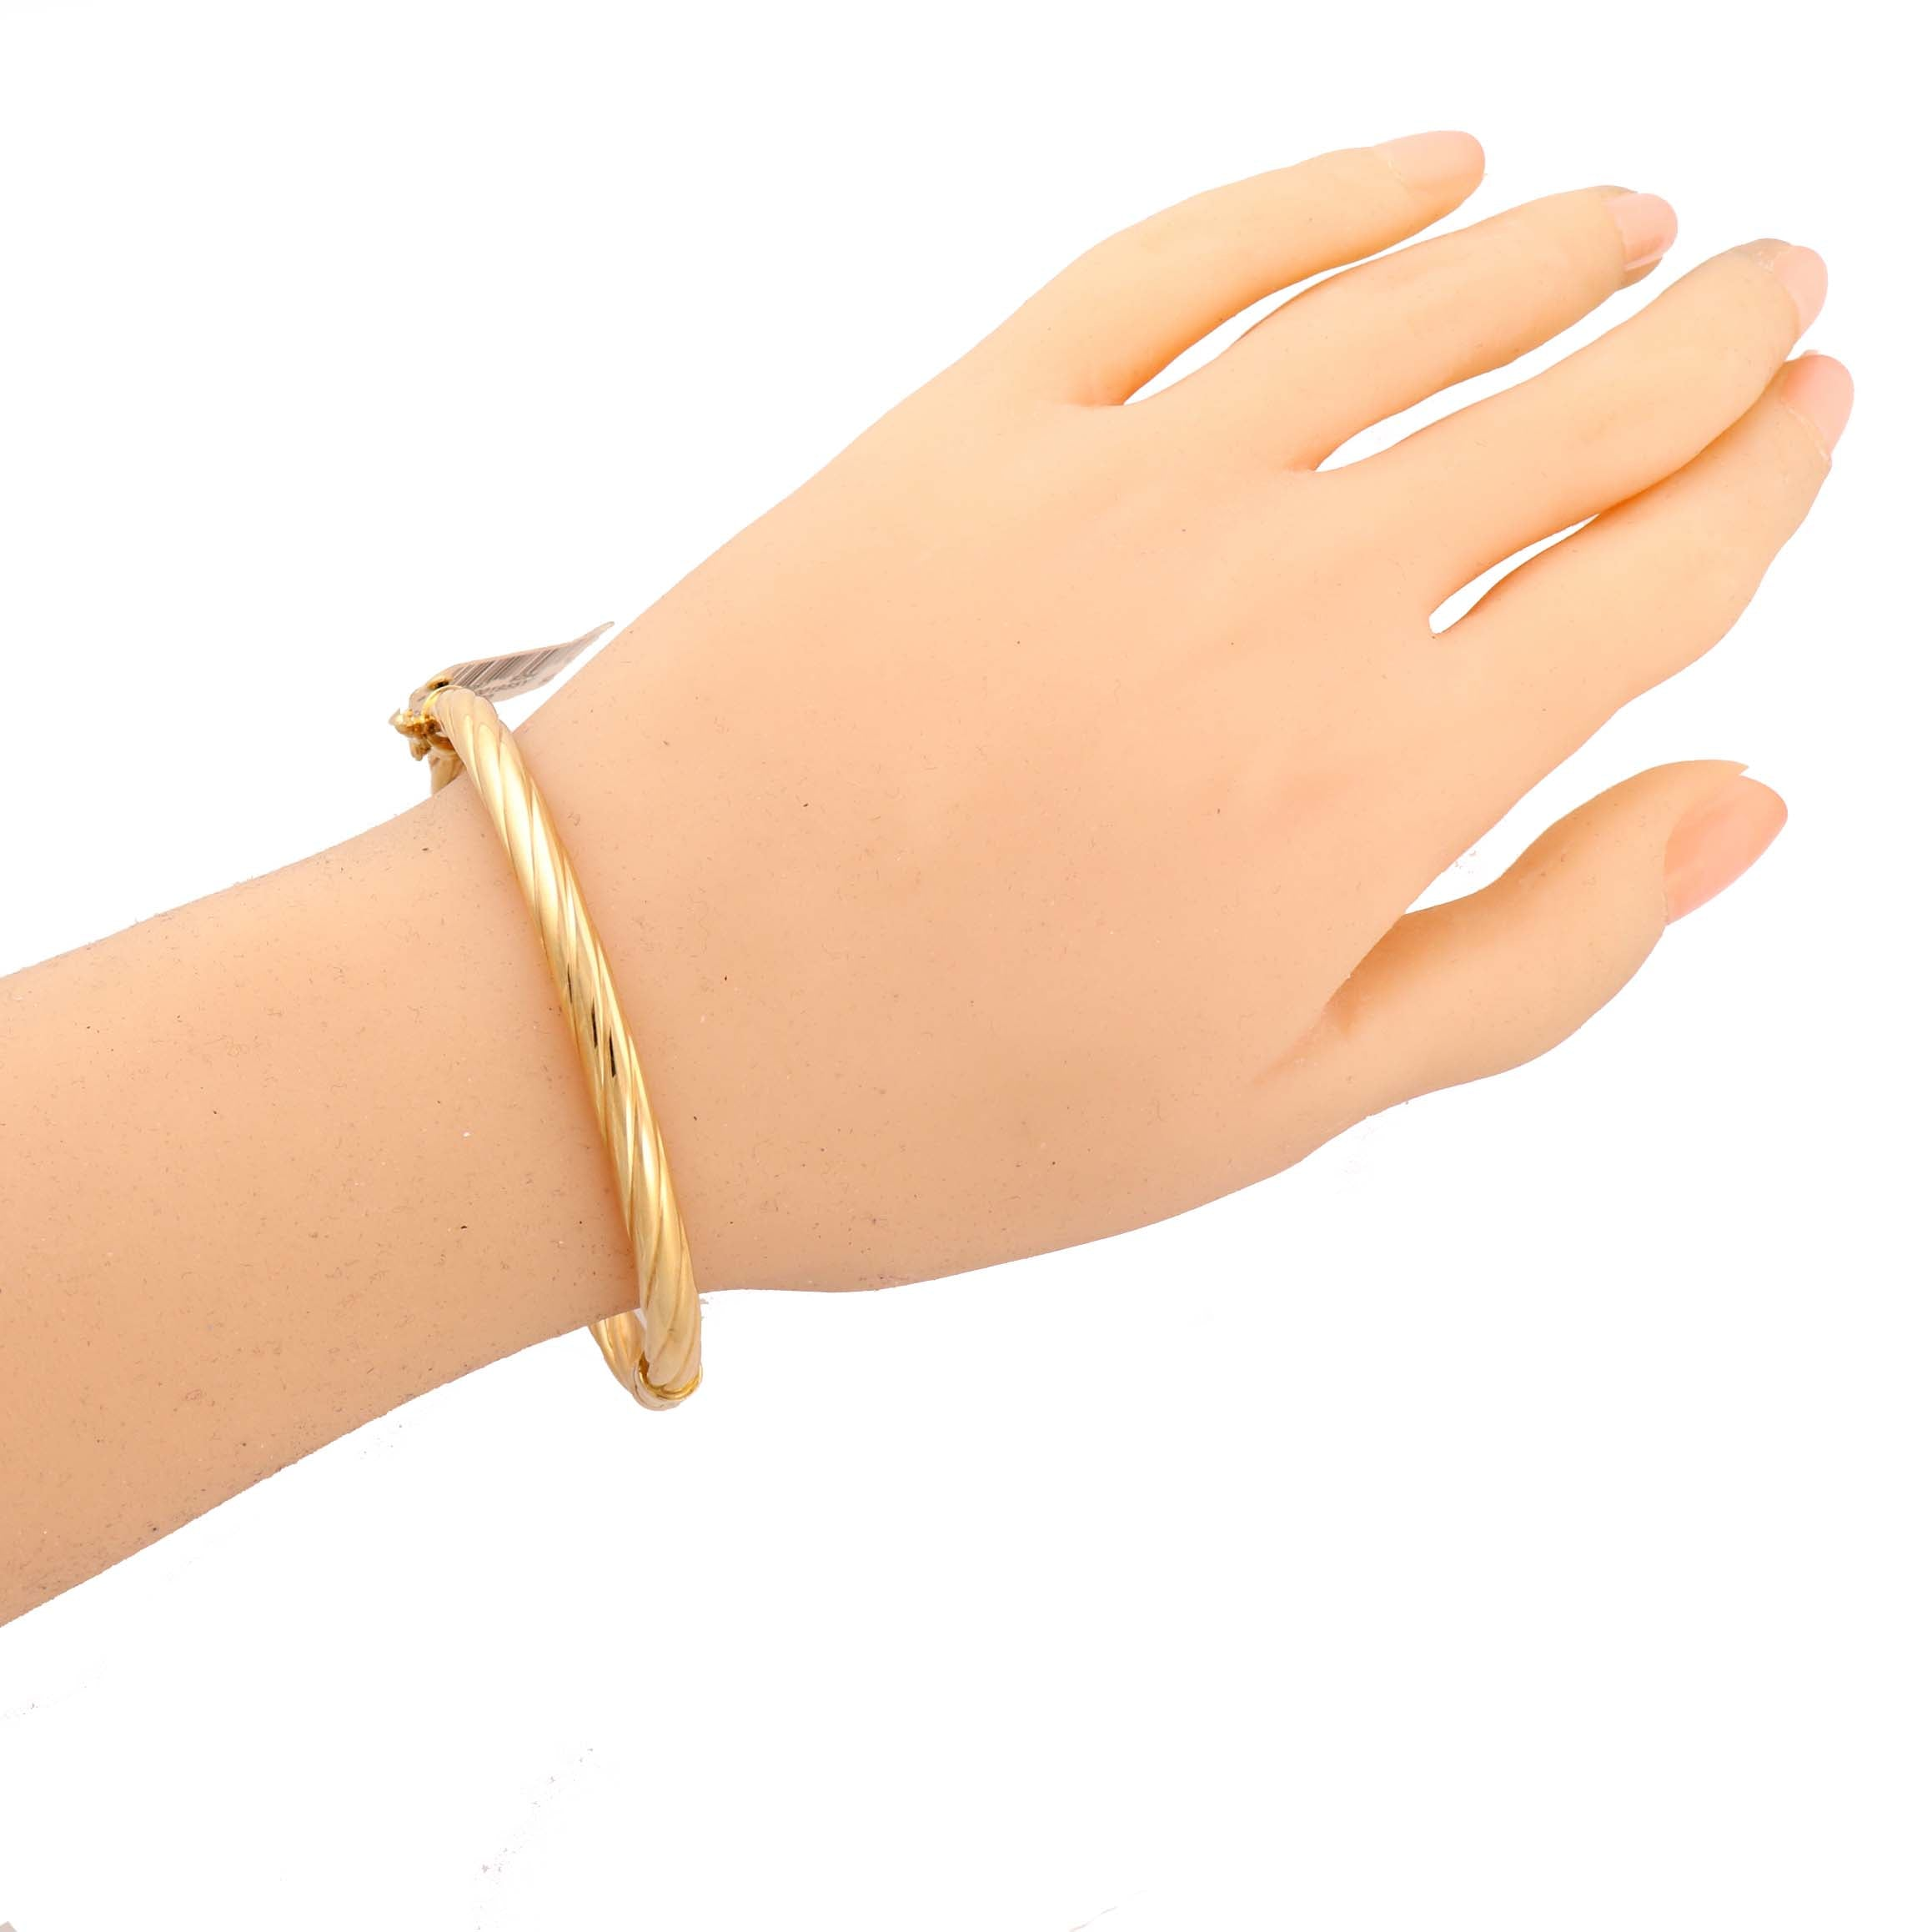 Authentic Ralph Lauren Solid 14k Yellow Gold Bangle Hinged Bracelet $1850 A9